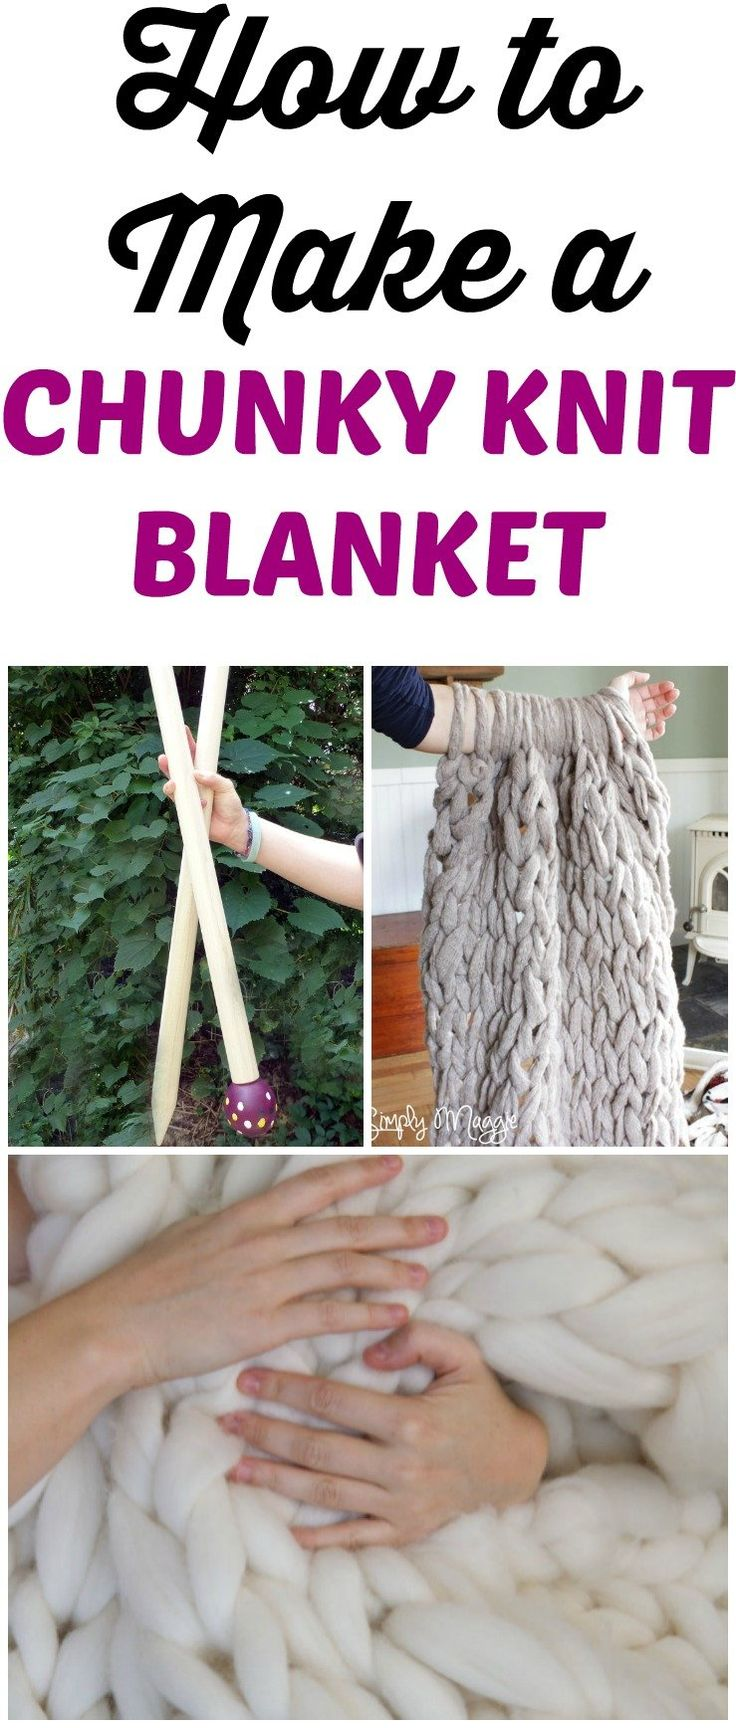 Make your own chunky knit blanket in less than one hour, even as a beginner knitter! Includes where to get yarn, a video tutorial, pattern and using jumbo needles. Learn how to knit. #chunkyknitblanket #knitting #blanket #diy #patterns #crafts